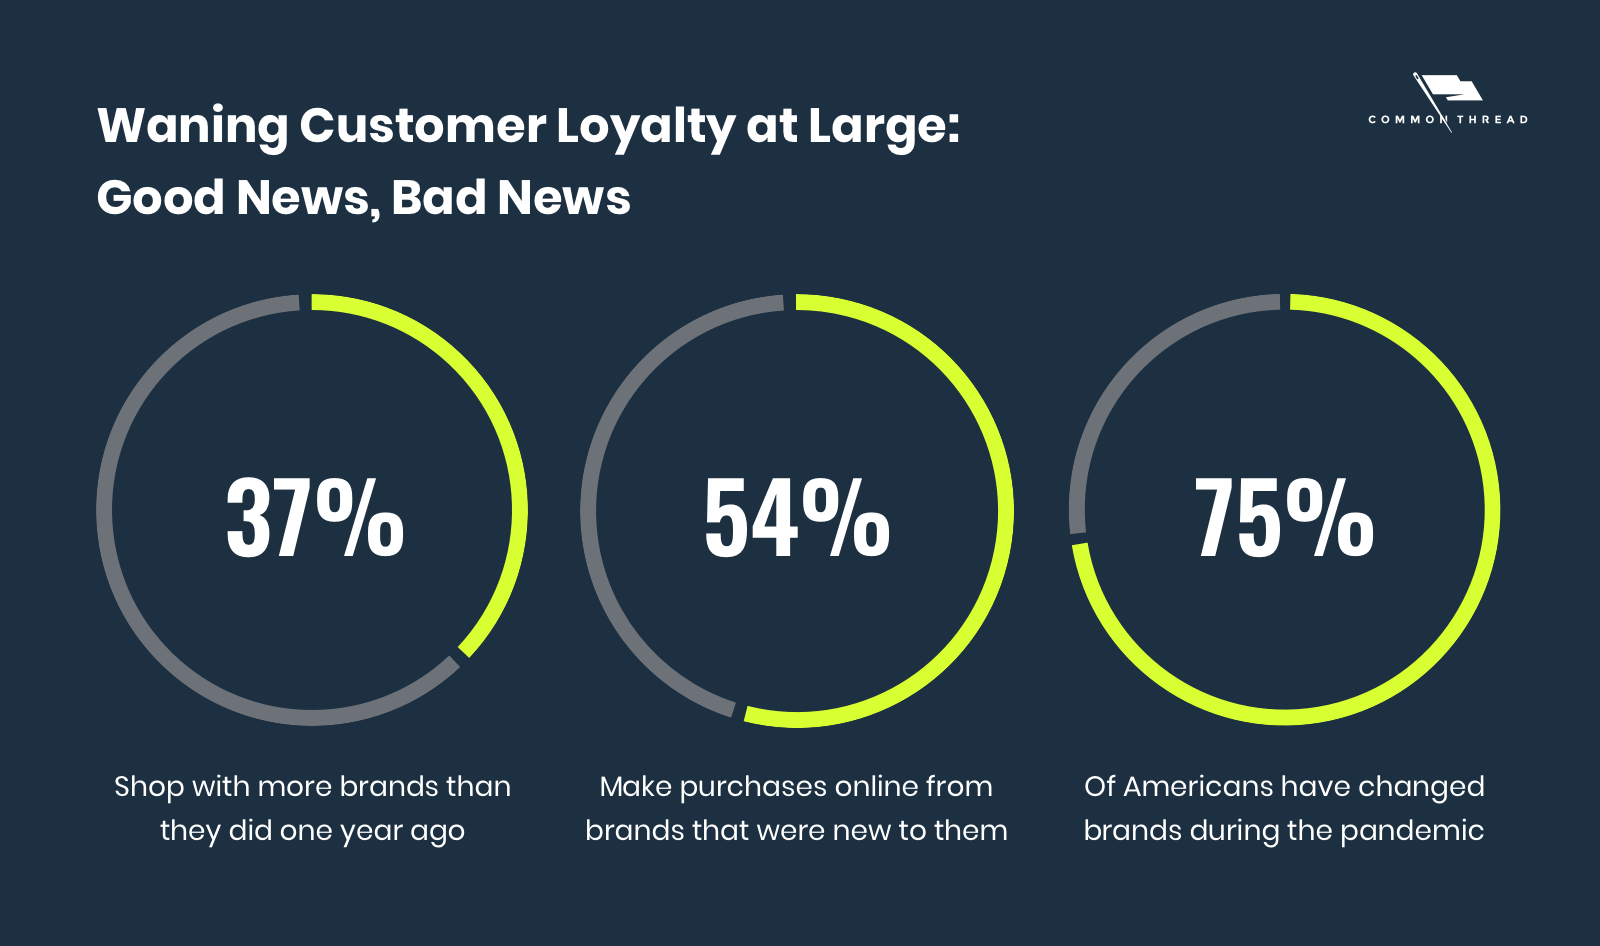 Waning Customer Loyalty at Large: Good News, Bad News. 37% of consumers shop with more brands than they did one year ago. 54% make purchases online from brands that were new to them. 75% of Americans have changed brands during the pandemic.